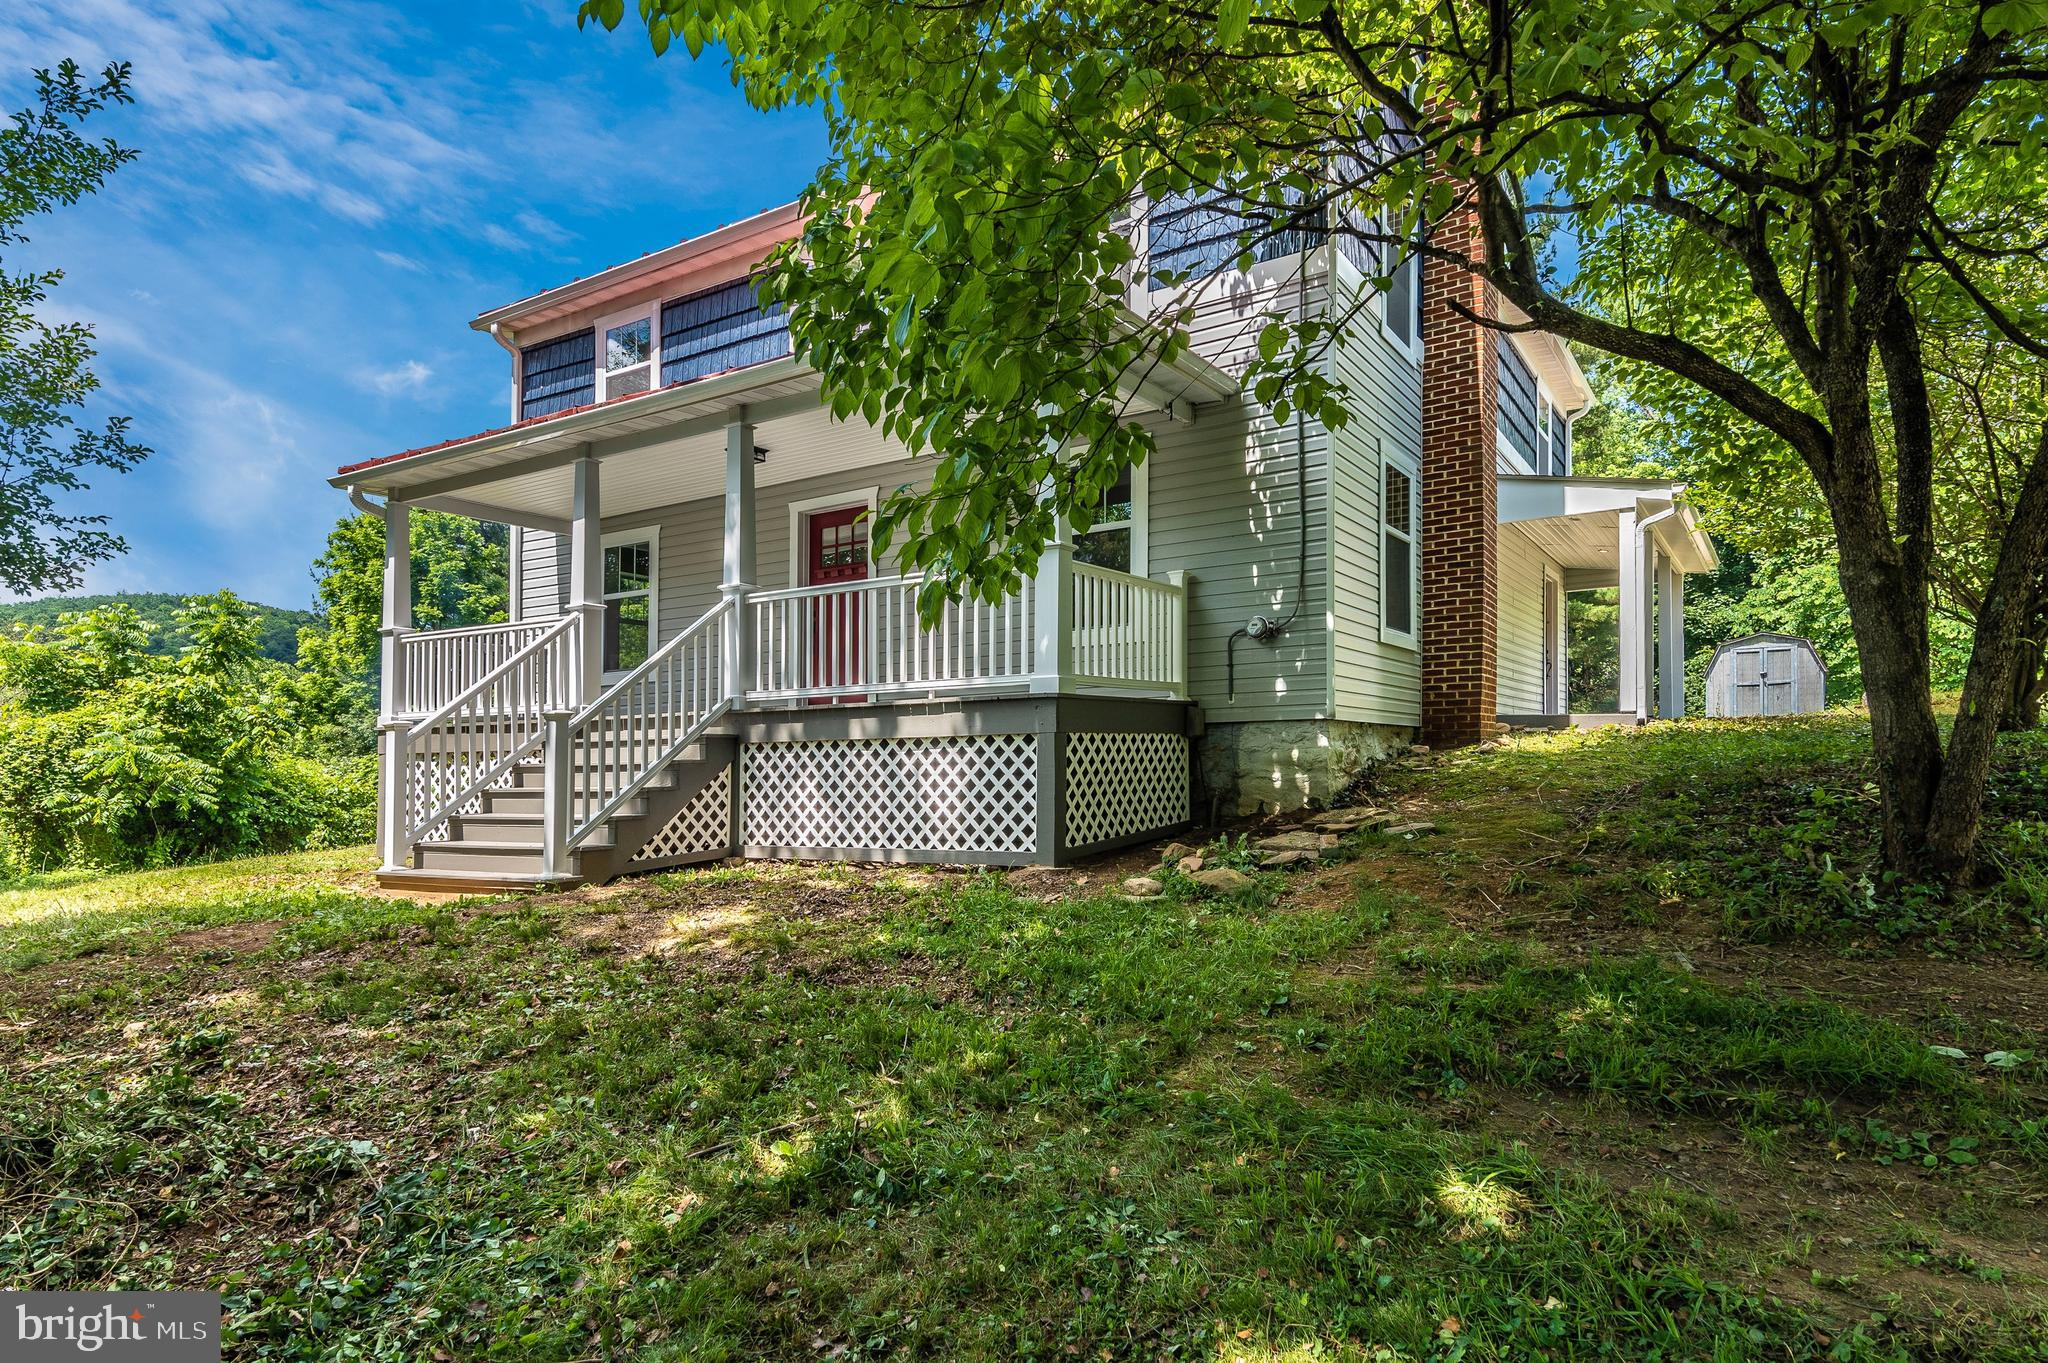 3510 S MOUNTAIN ROAD, KNOXVILLE, MD 21758